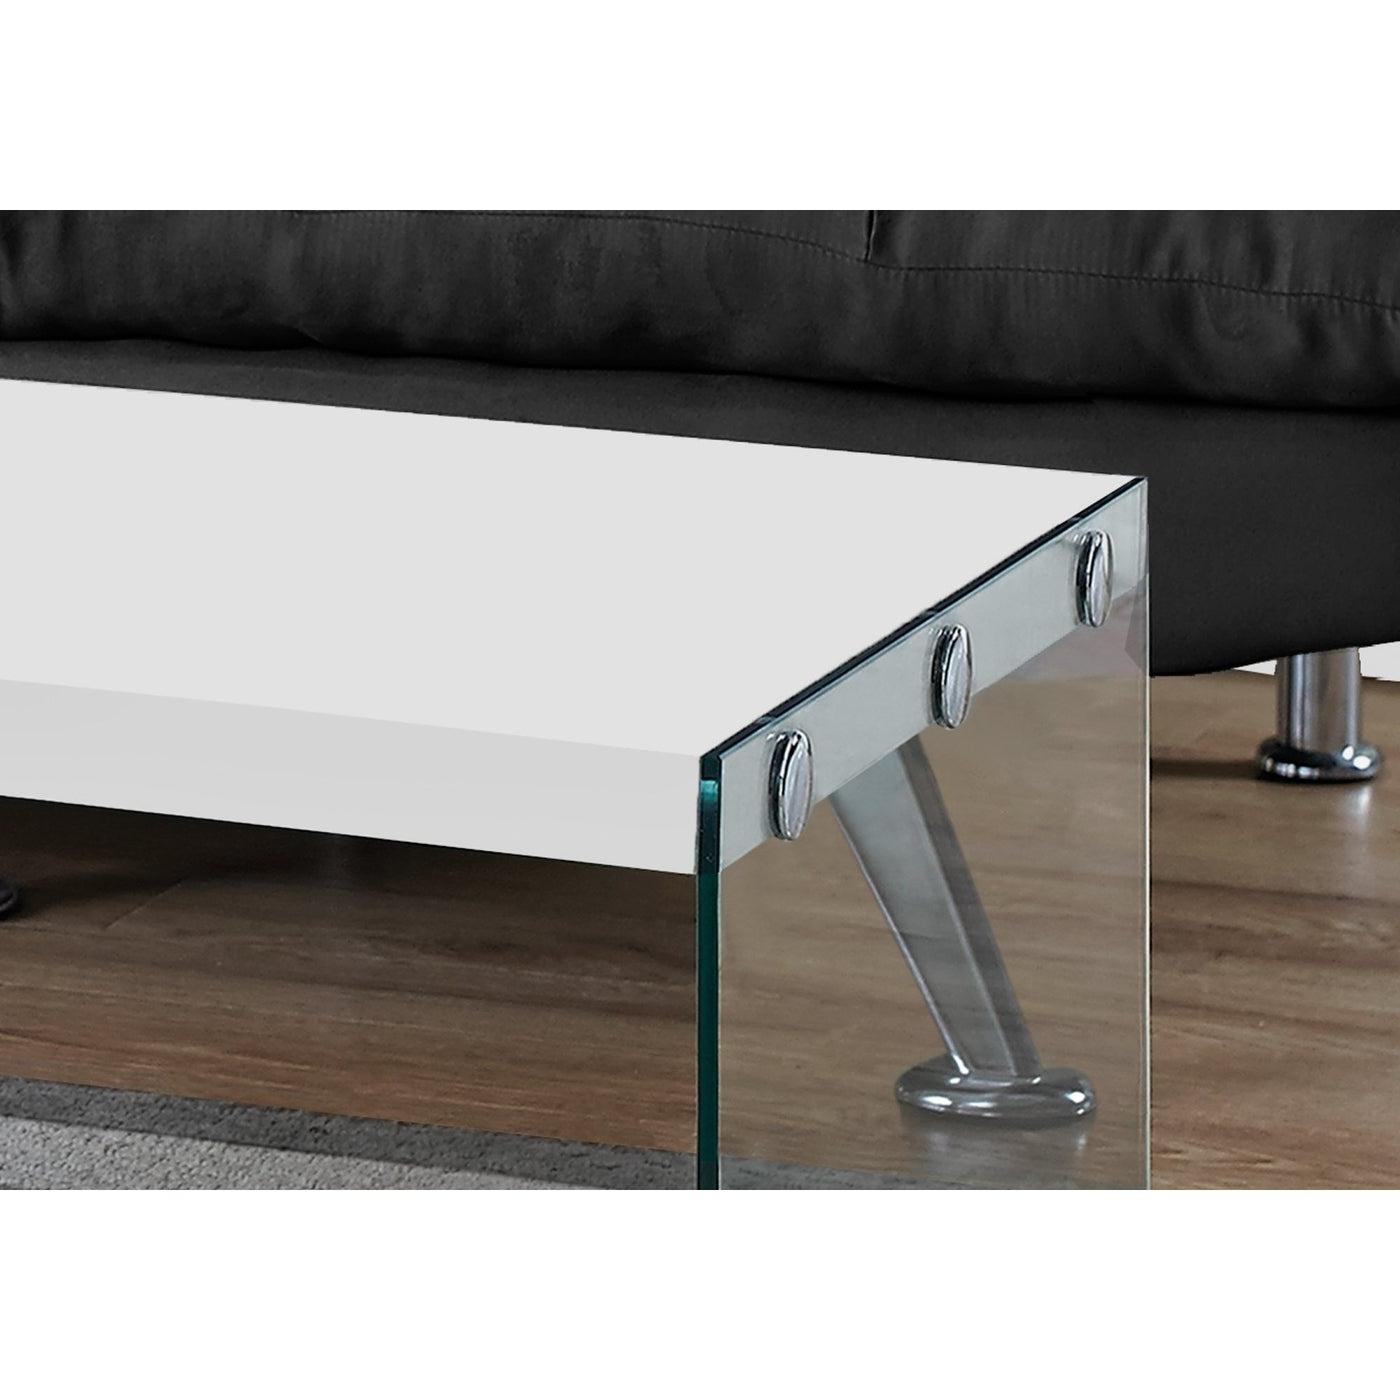 Glossy White Hollow Core Tempered Glass Cocktail Table Throughout Fashionable Glossy White Hollow Core Tempered Glass Cocktail Tables (Gallery 2 of 20)